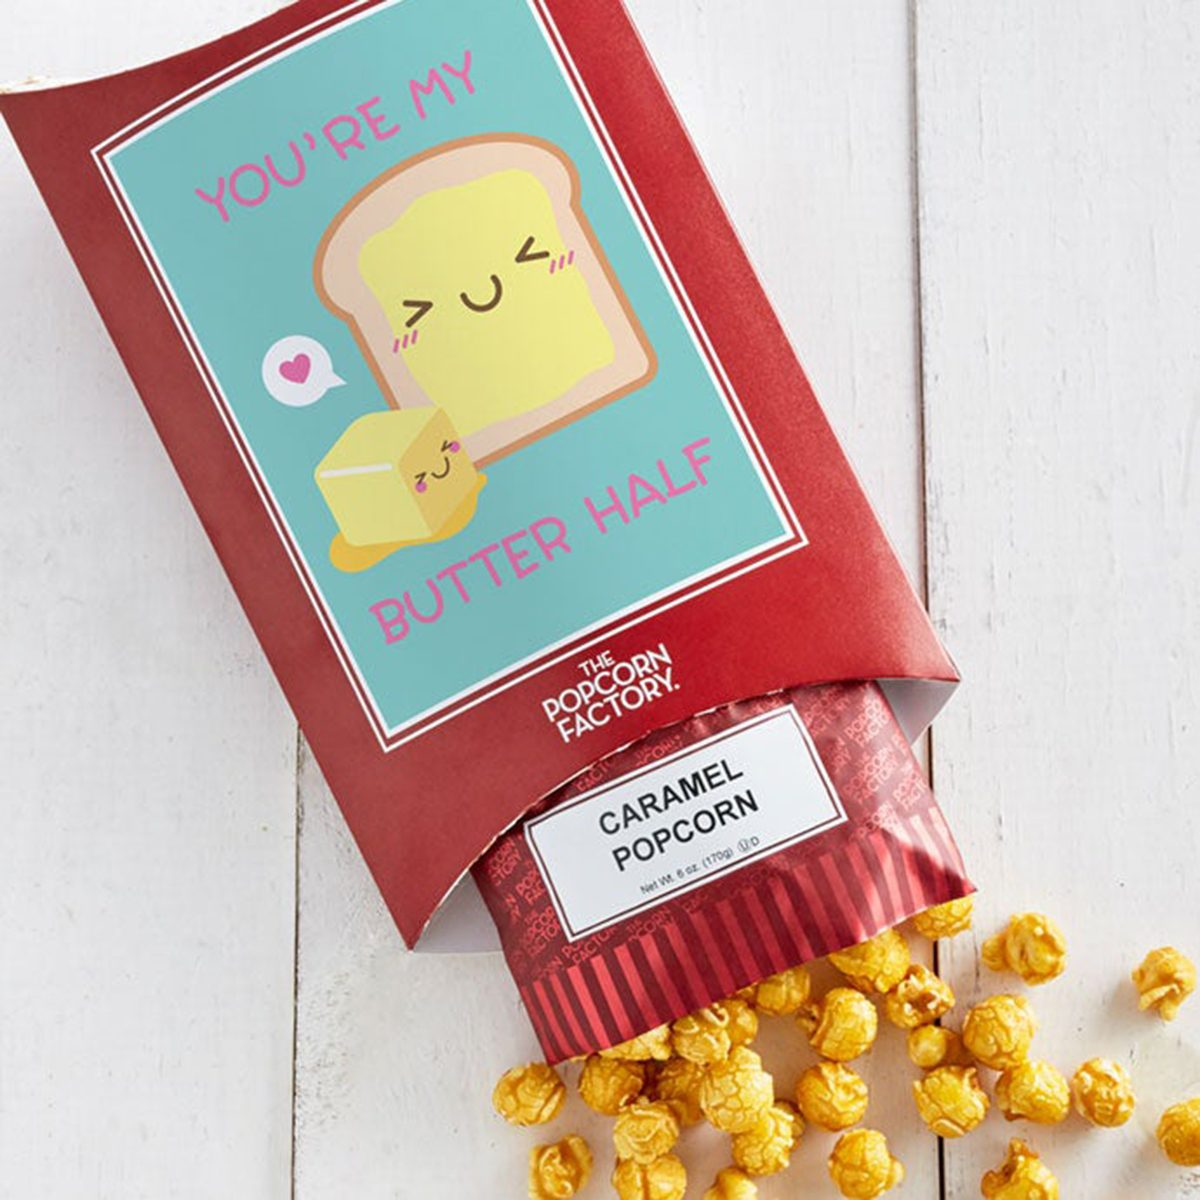 edible valentine's gifts The Popcorn Factory Cards With Pop